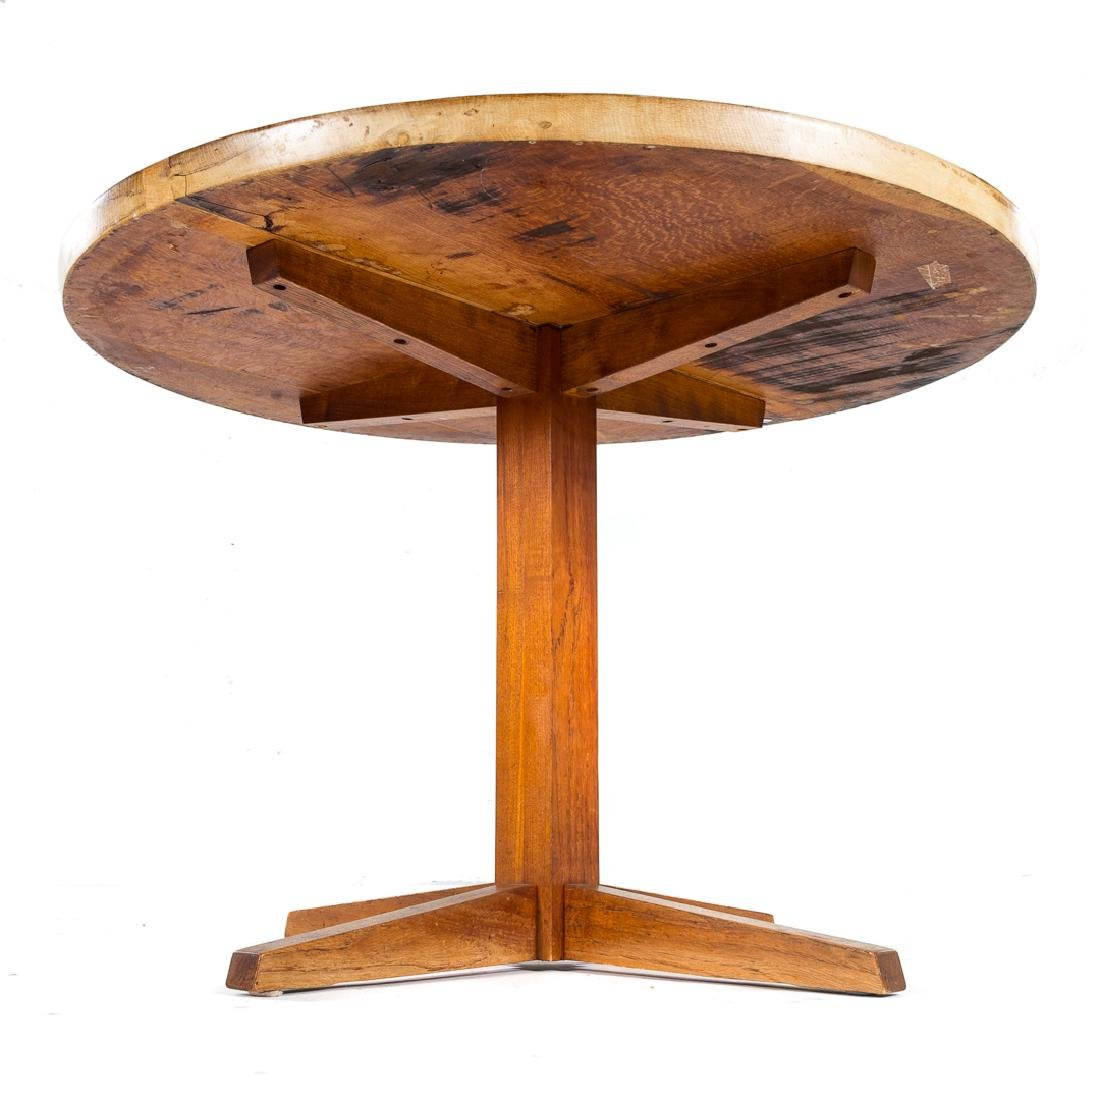 George Nakashima Round Pedestal Table - 2